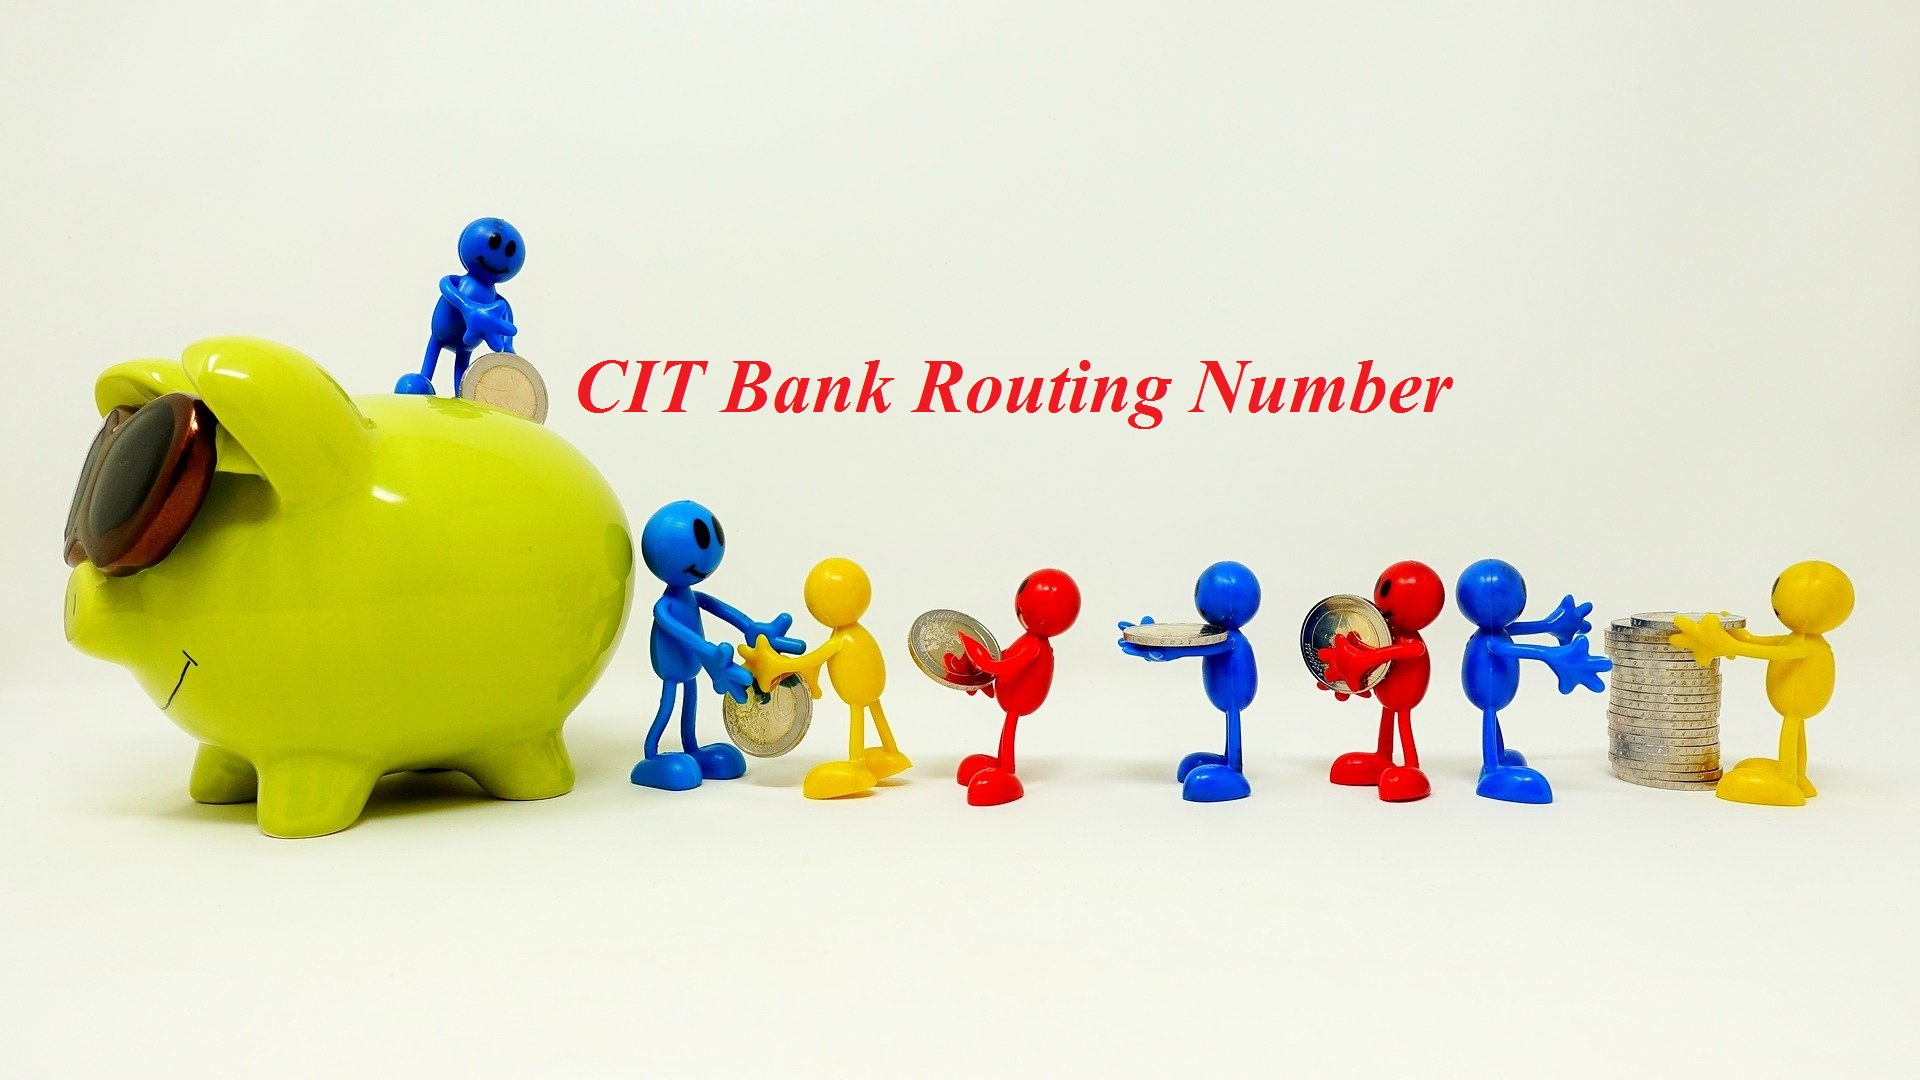 CIT Bank Routing Number